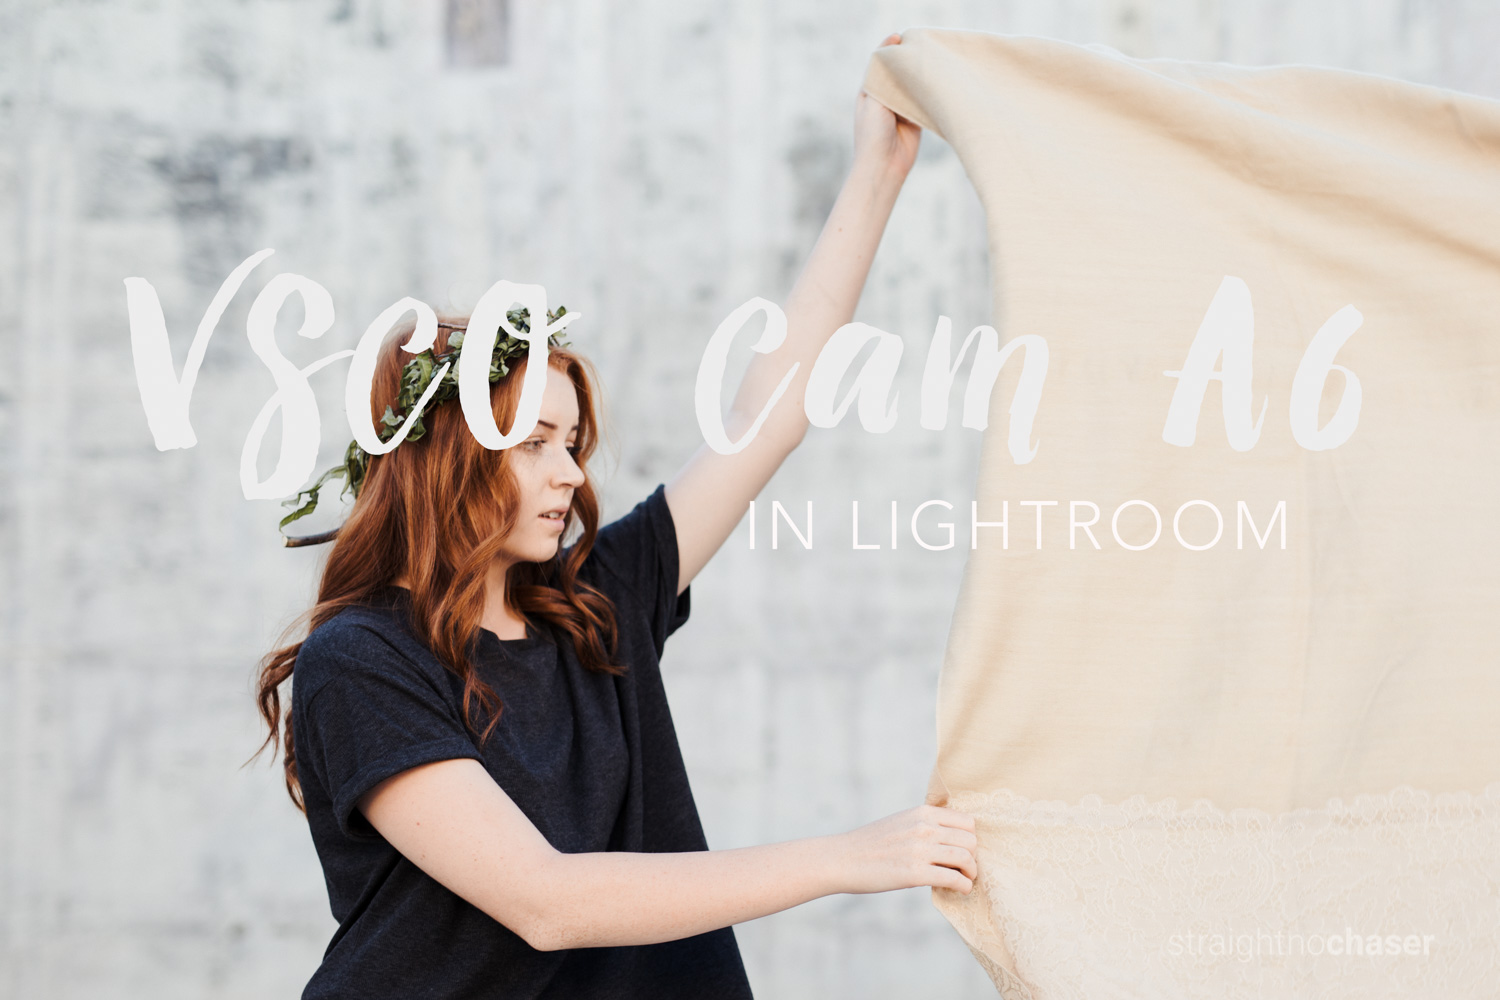 VSCO Cam Analogue/Aesthetic A6: How to create in Lightroom